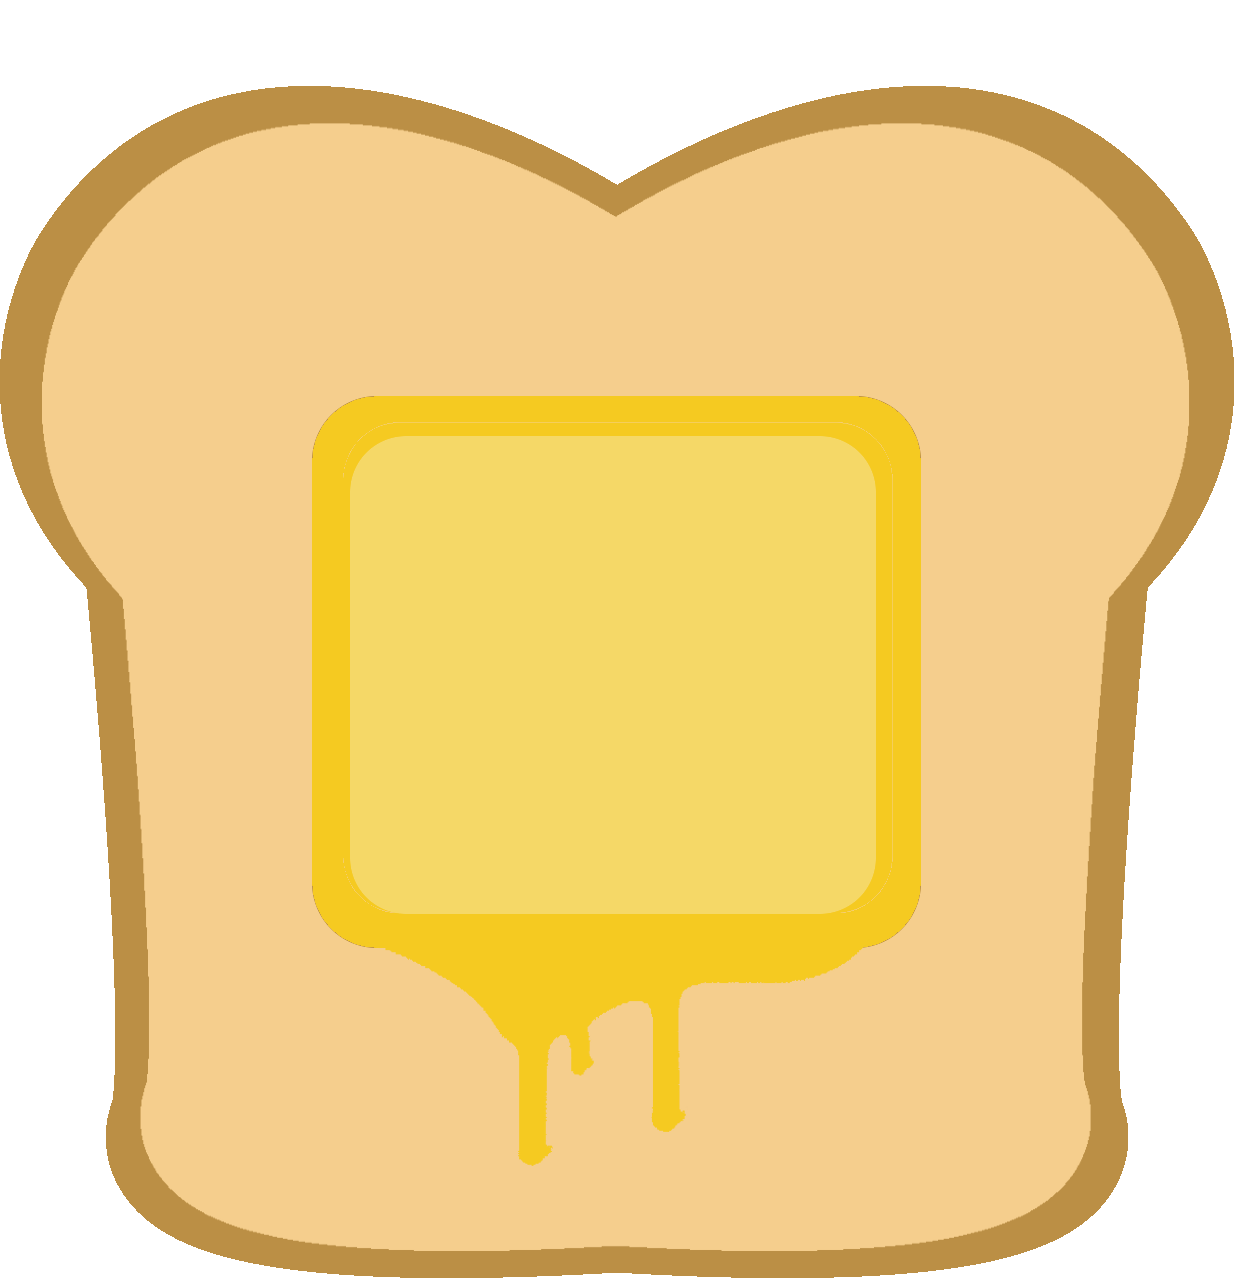 image free download Toast clipart. Butter buttered free on.